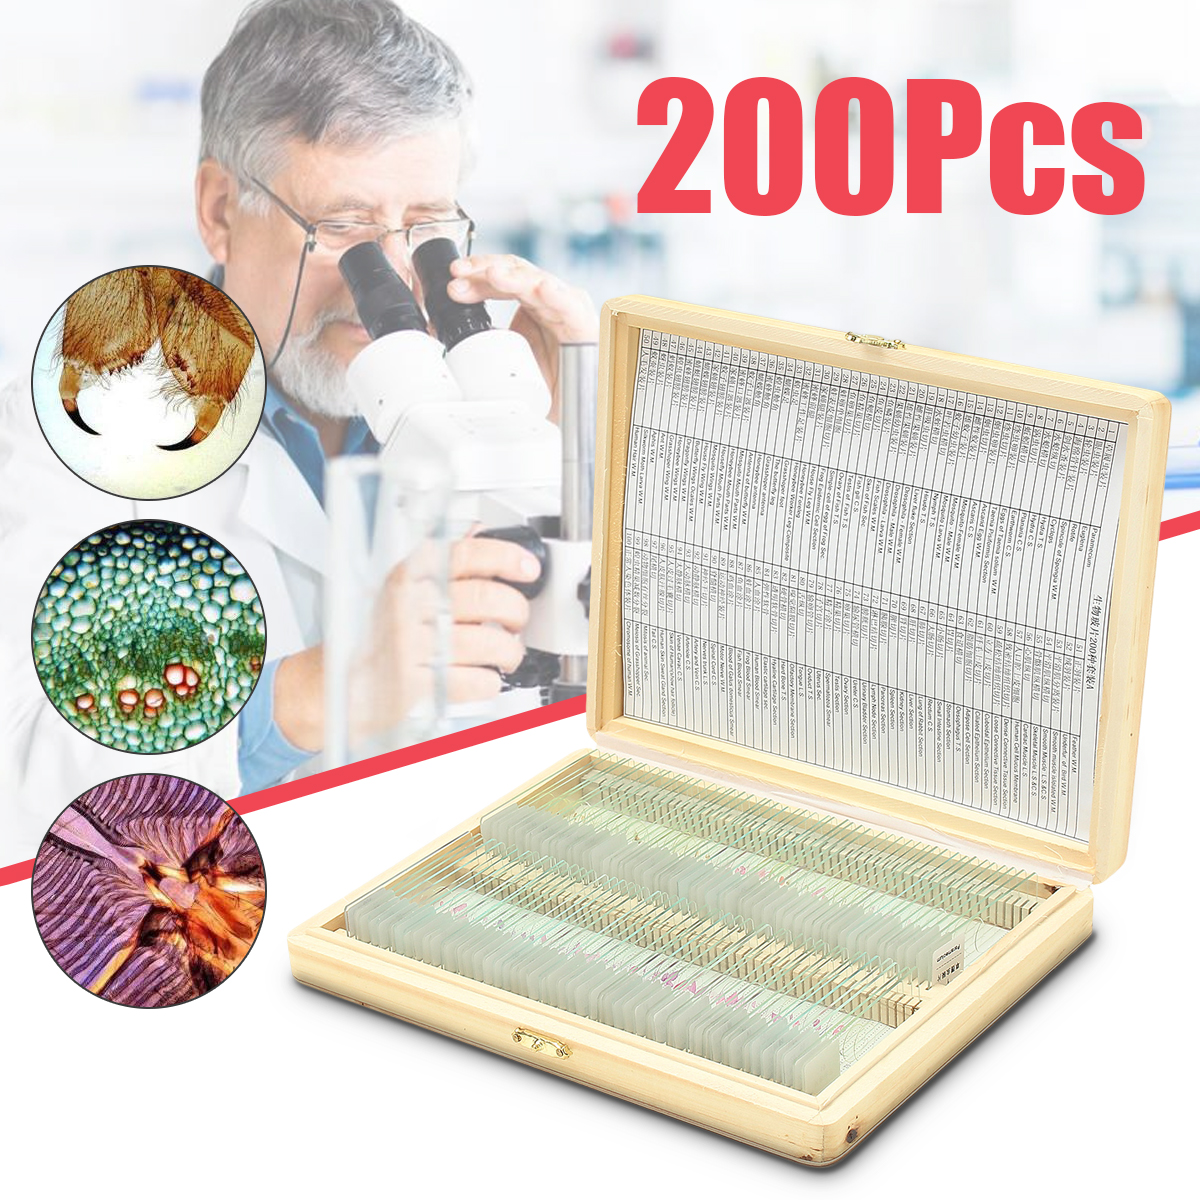 2xBoxes/Set Prepared Microscope Glass Slide Science Slides 100xPlant +100x Insects Tissues slides for Biological Education medicine science type blood test slides and marrow slides